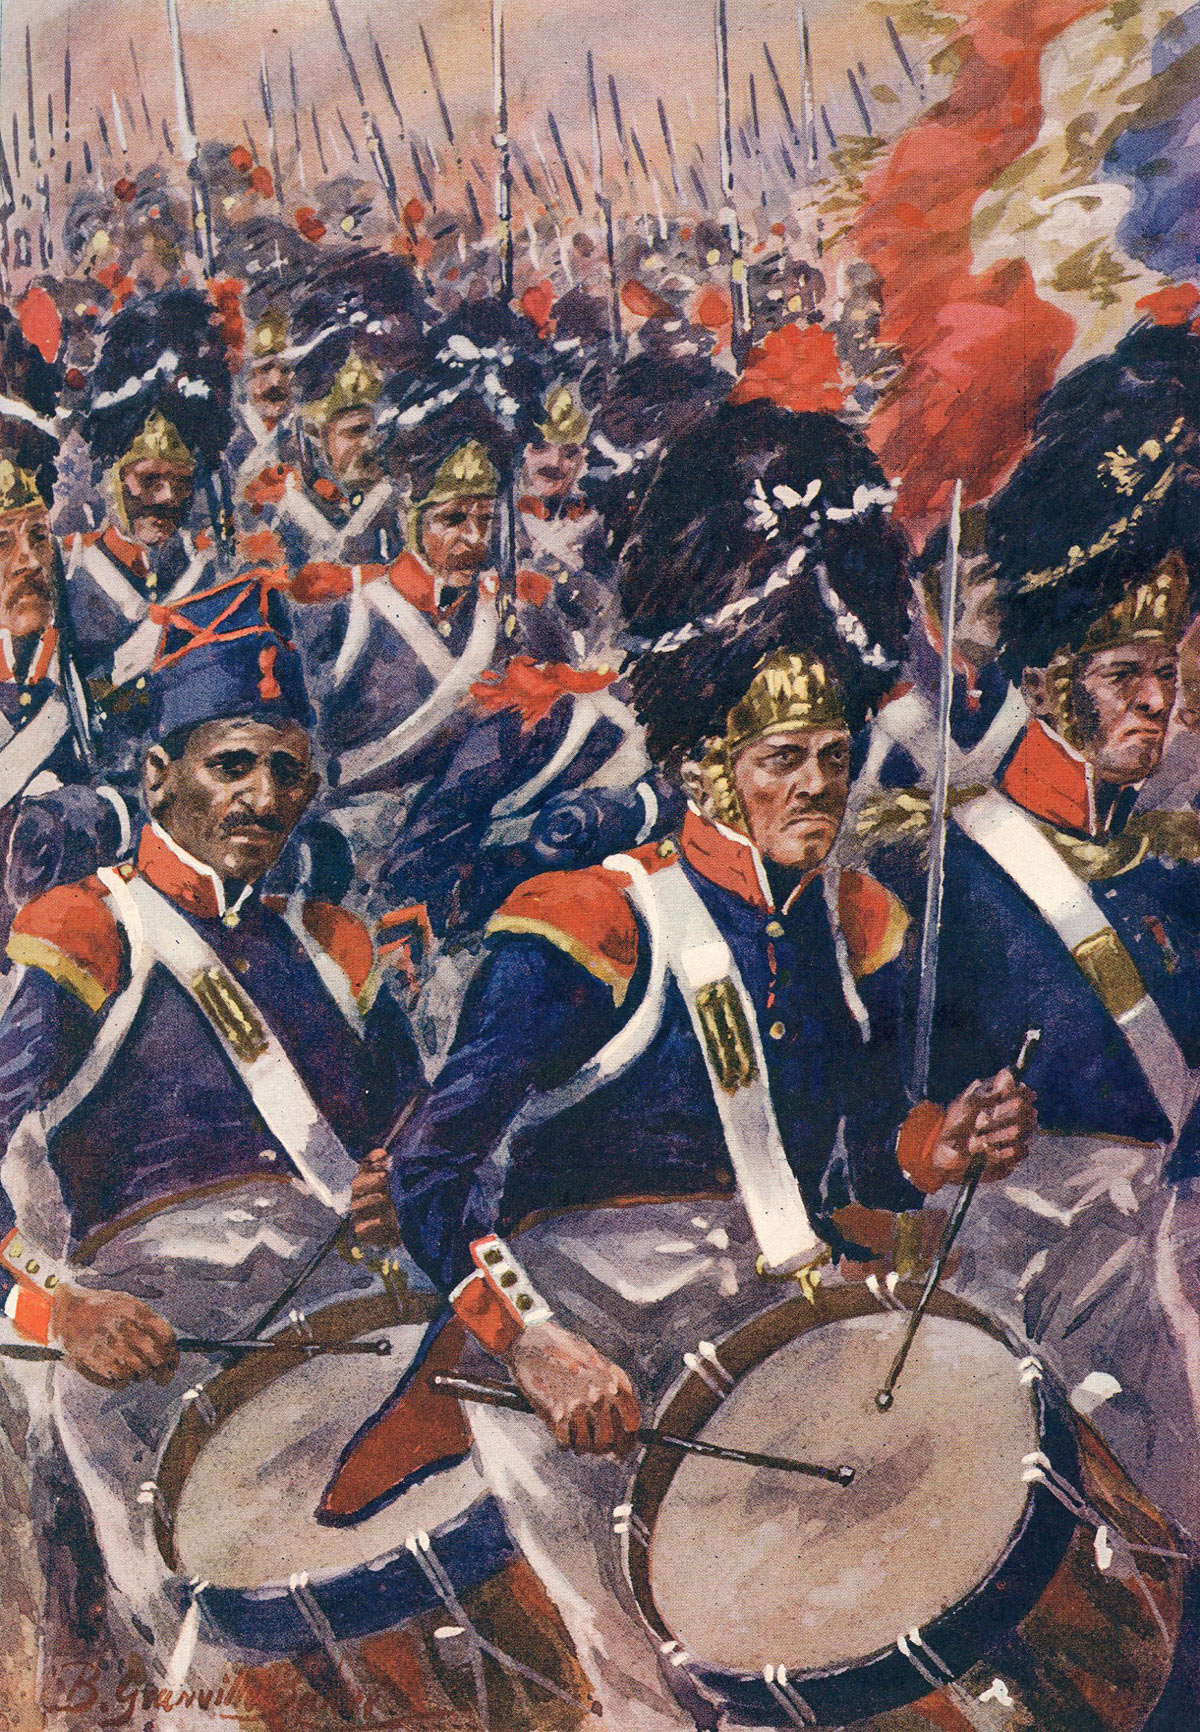 French infantry column attacking at the Battle of Barossa on 5th March 1811 in the Peninsular War: picture by R. Granville Baker